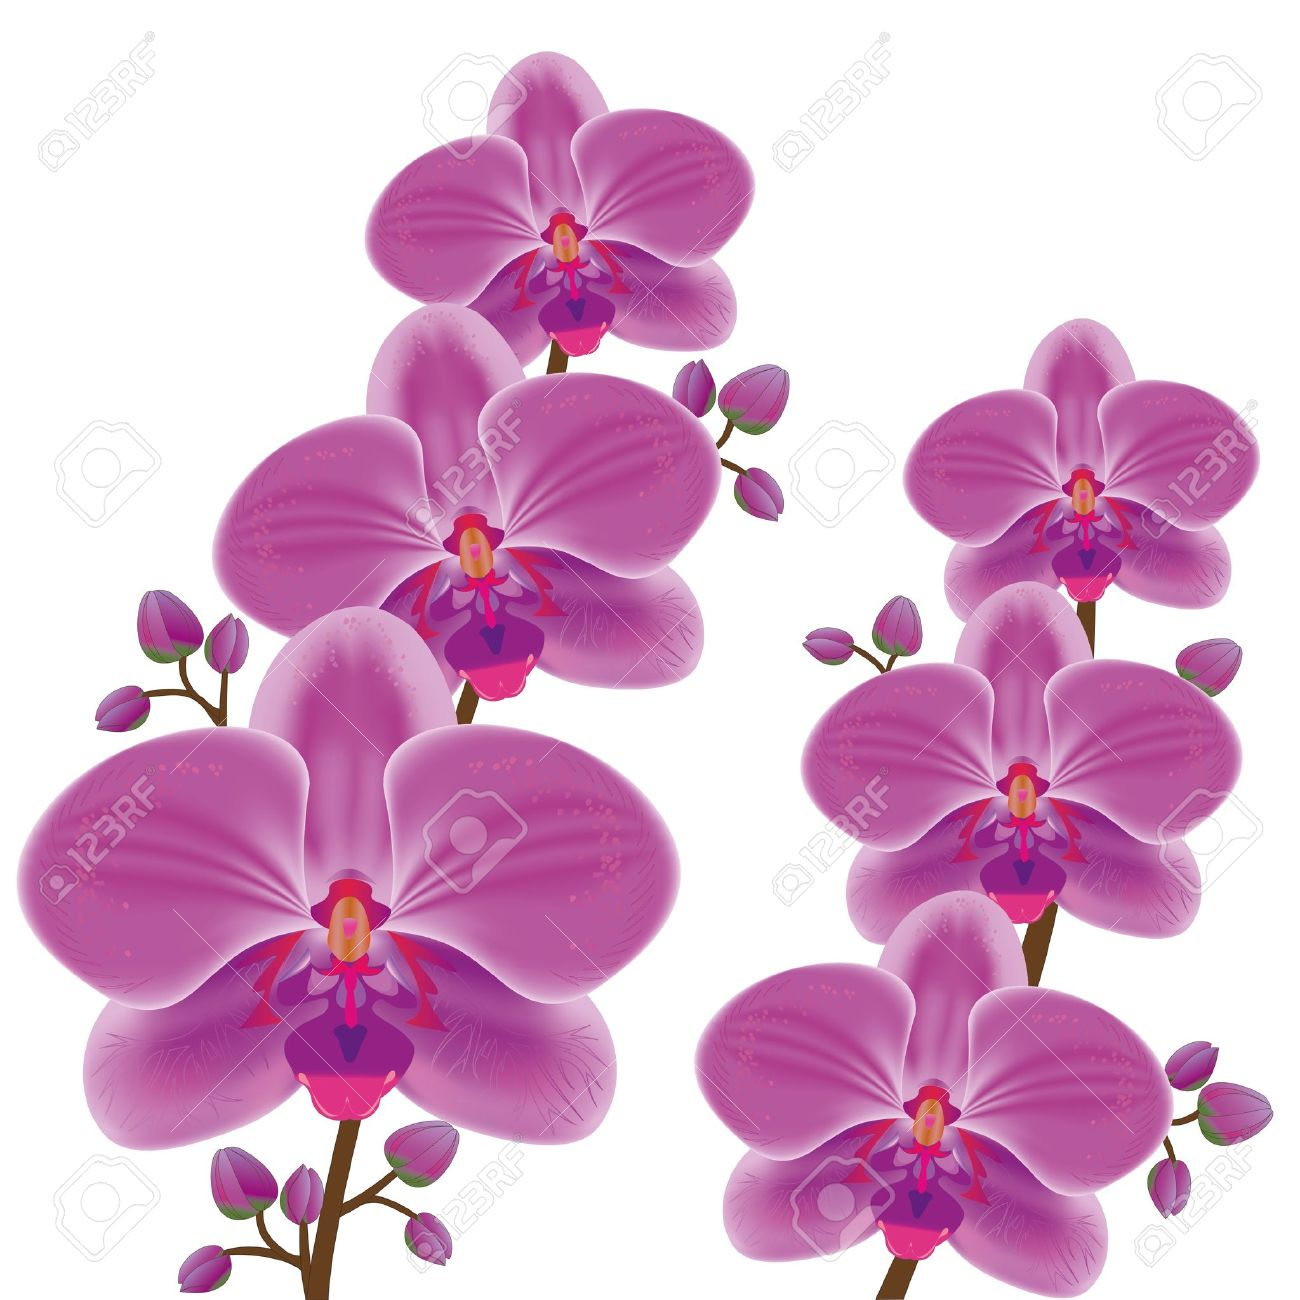 Free orchid clipart.